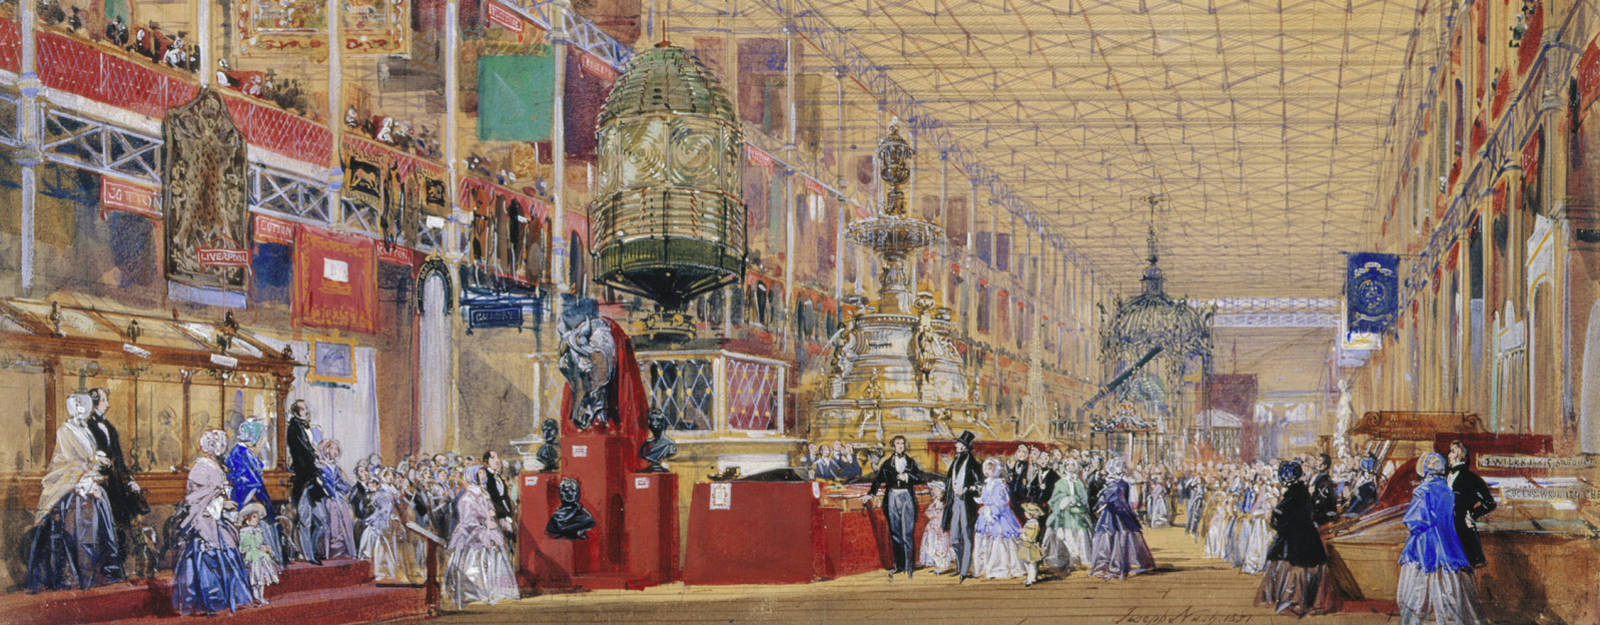 The Great Exhibition of 1851: the British Nave dated 1851 by Joseph Nash